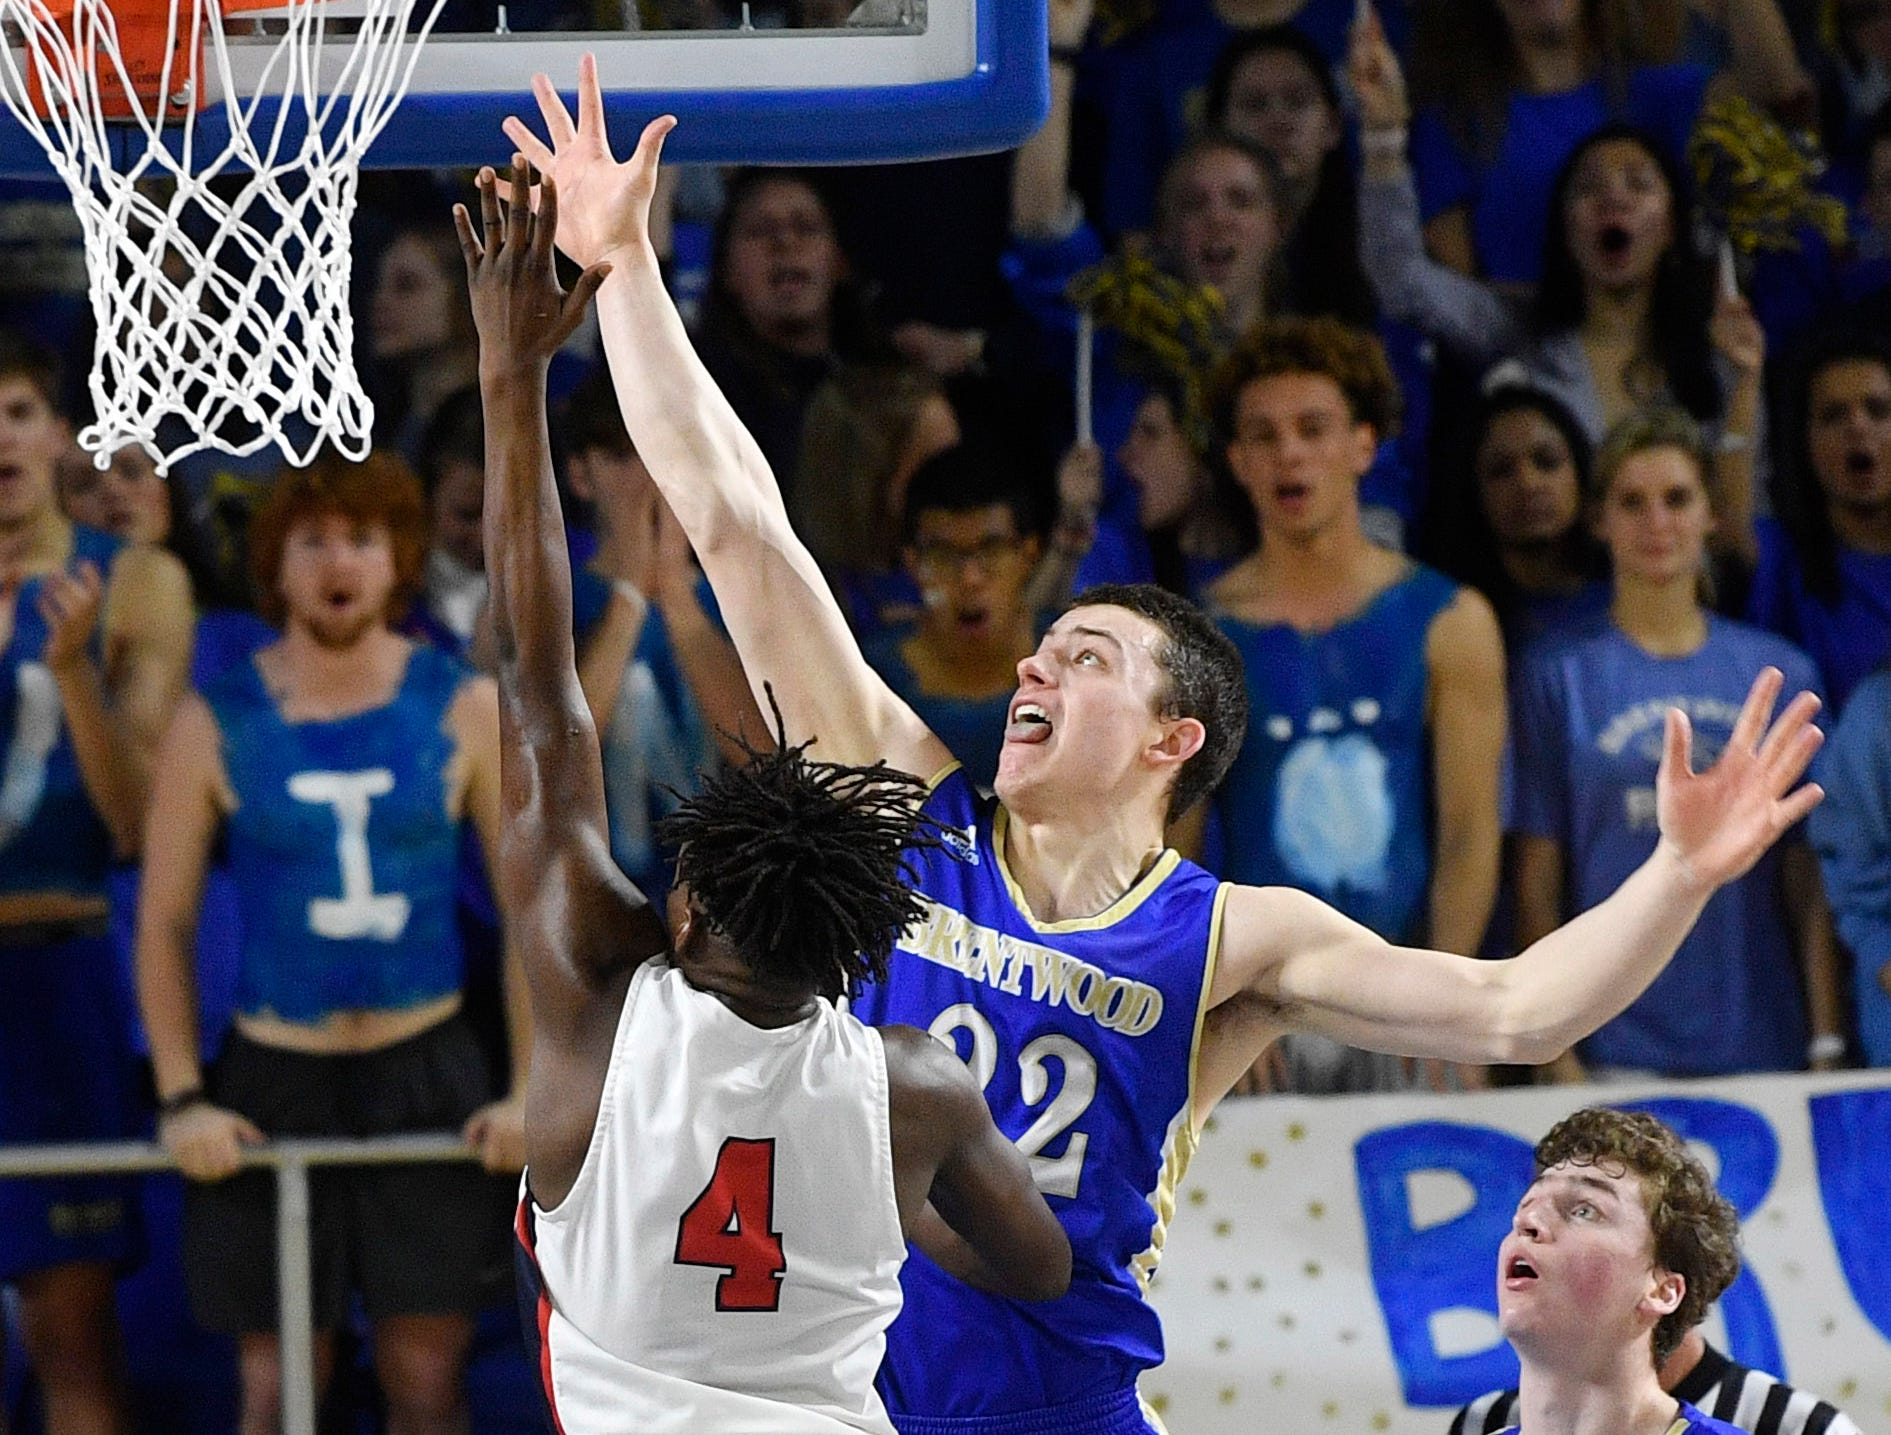 Brentwood's Harry Lackey (22) tries to block Oakland's Mandrell Grant (4) as Brentwood plays Oakland iin the TSSAA Class AAA quarterfinals  Thursday, March 14, 2019, in Murfreesboro, Tenn.